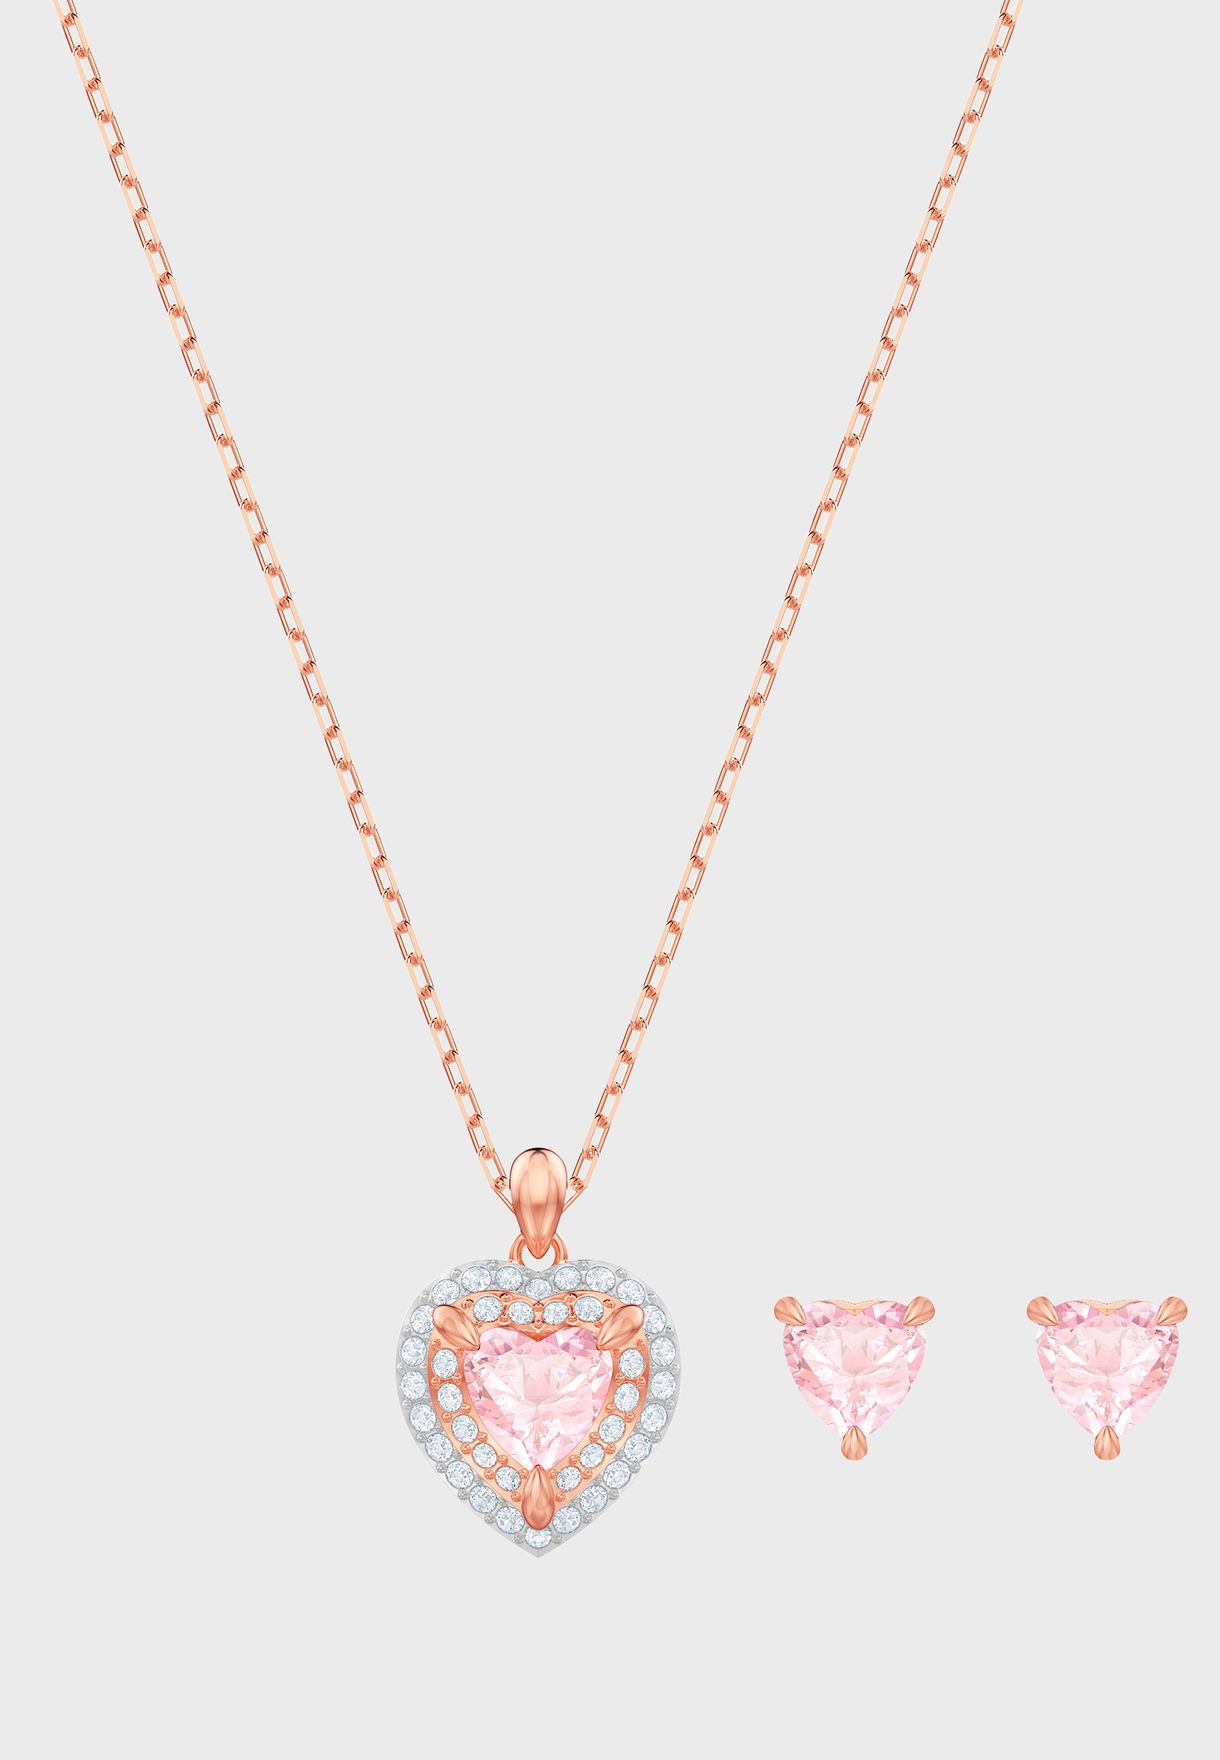 One Necklace + Earrings Set